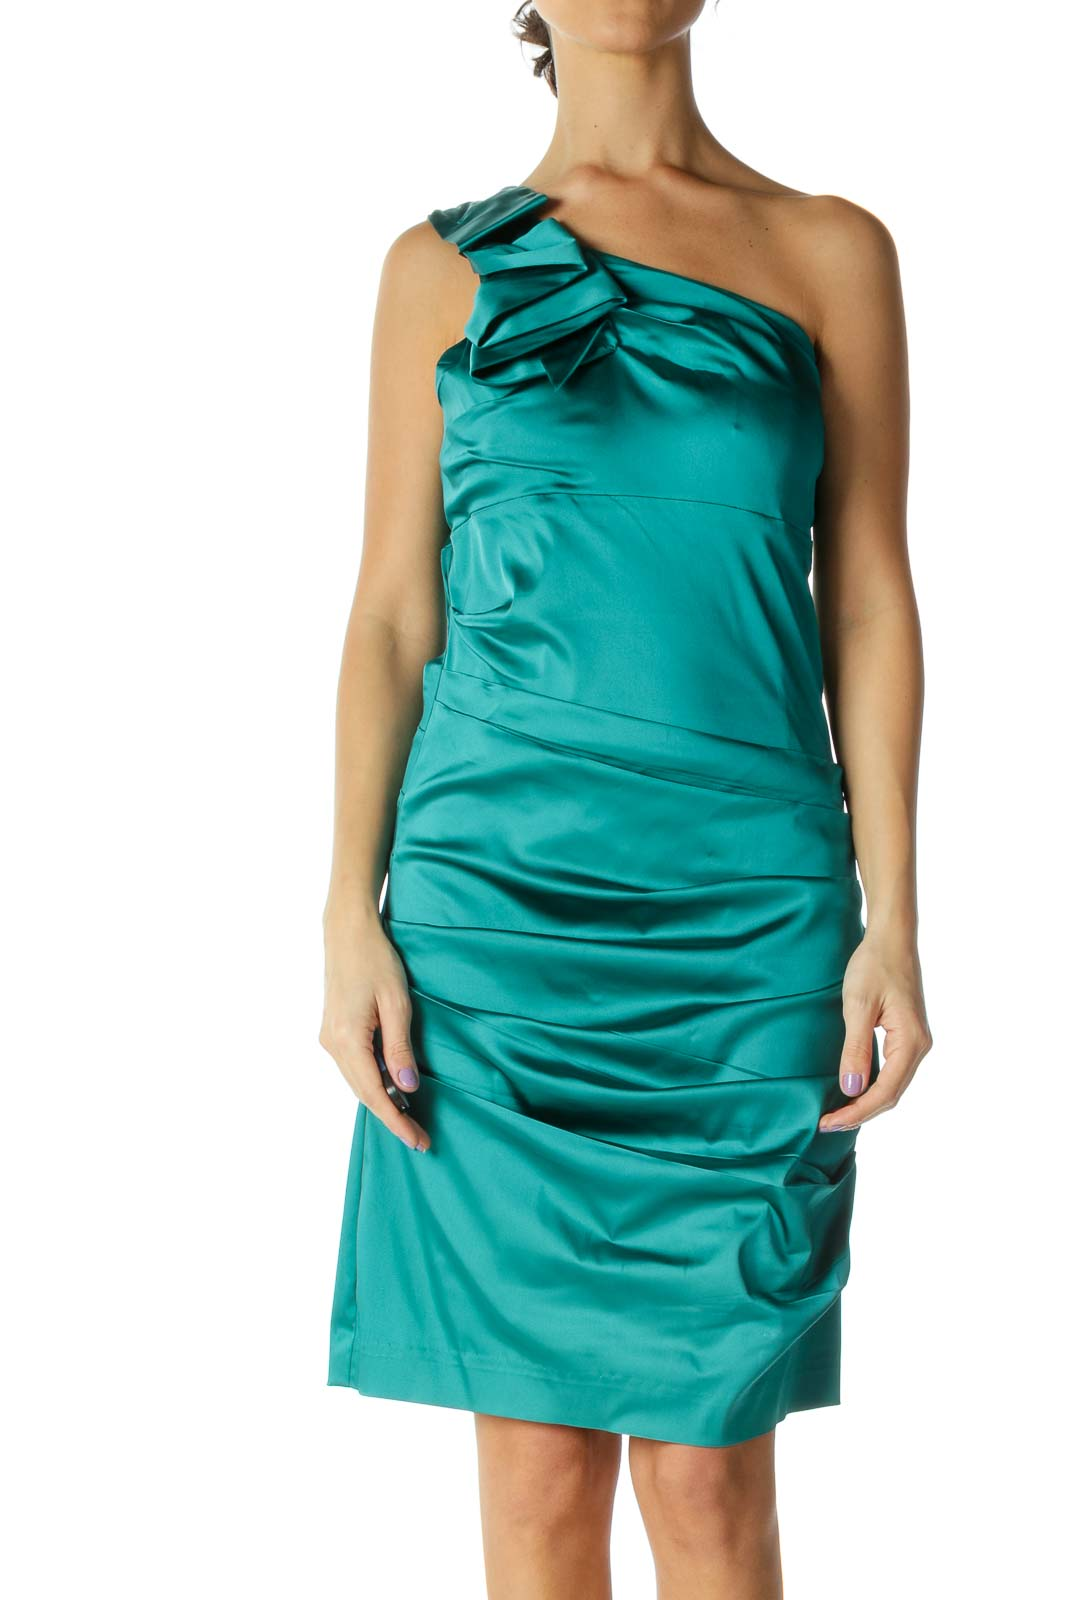 Turquoise One-Shoulder Ruffled Cocktail Dress Front